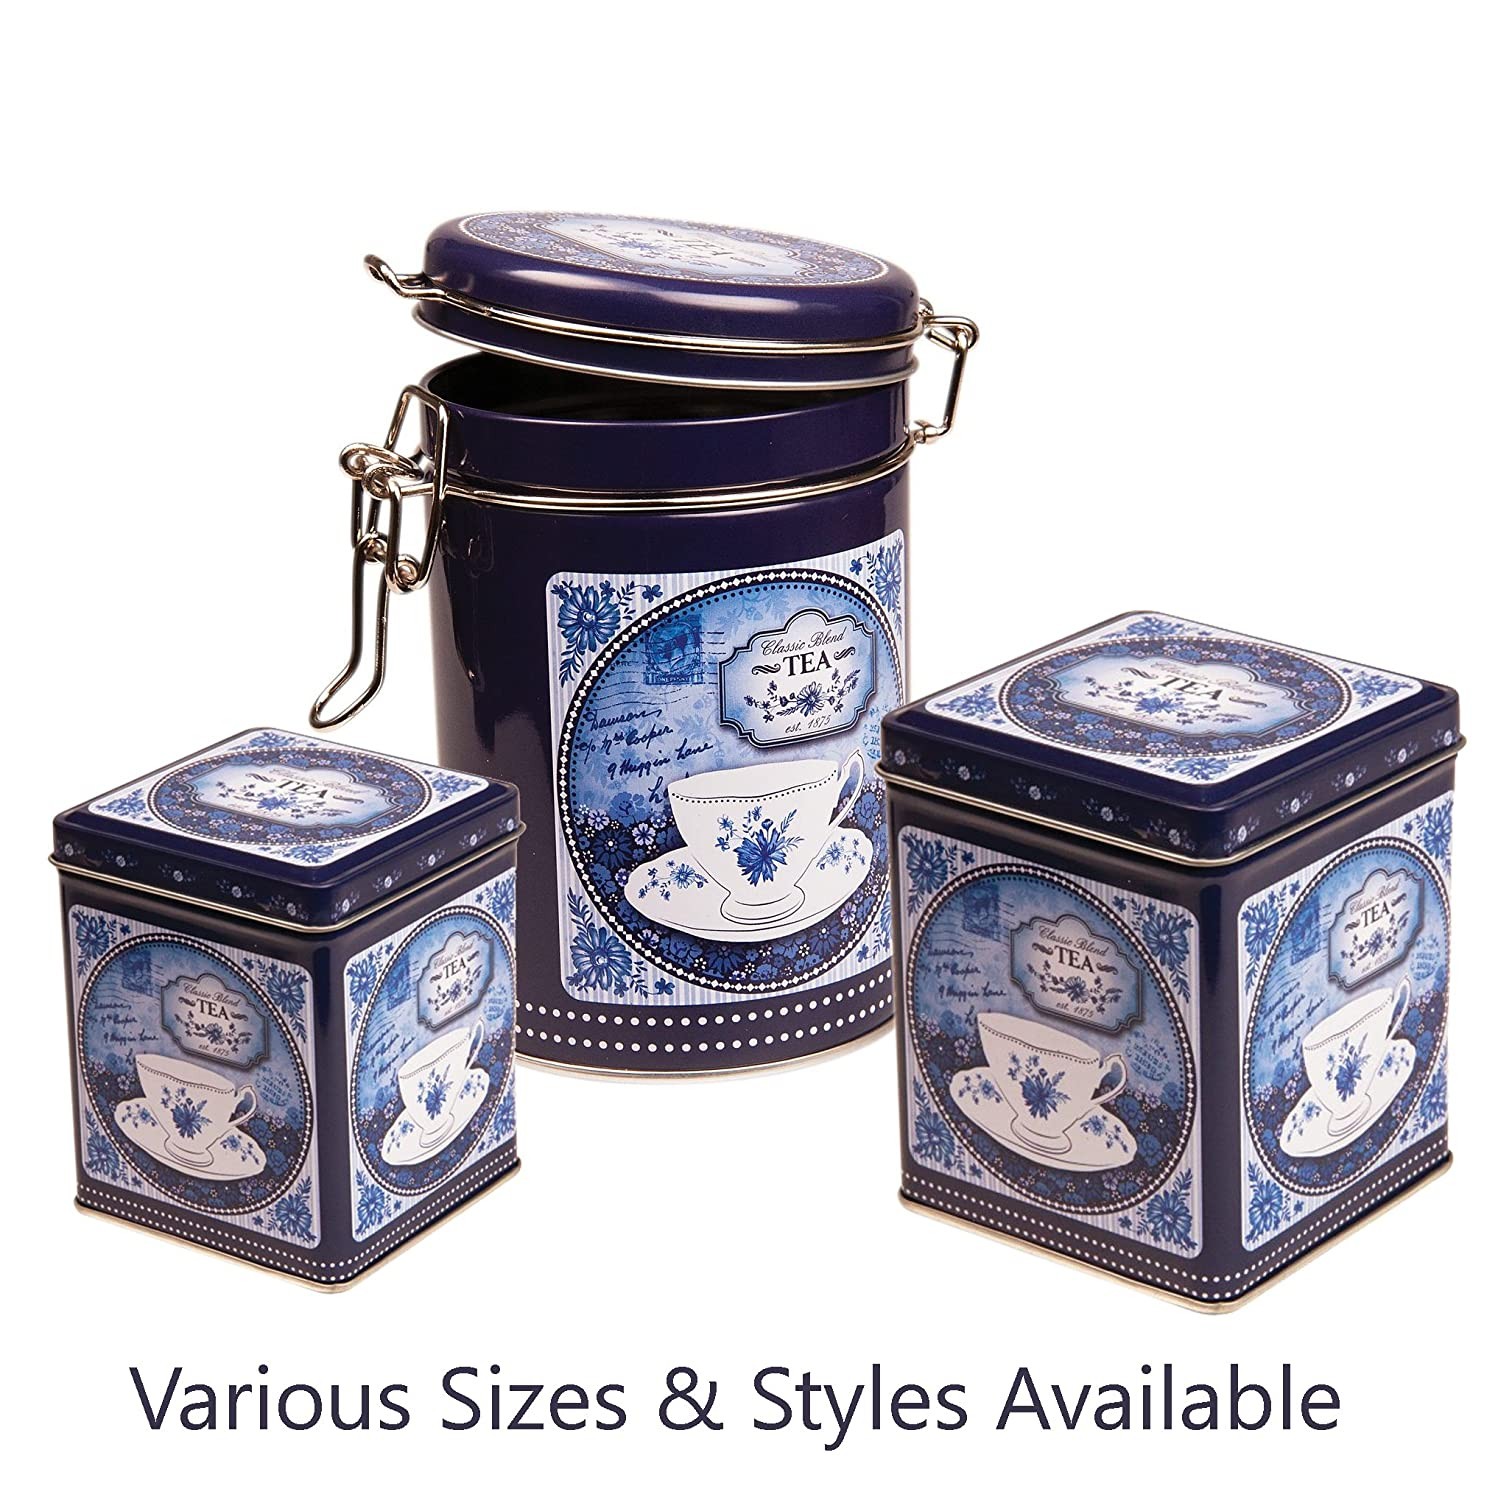 CHINA BLUE - Classic Blend Retro Vintage Style SQUARE Hinged Lid 200g Tea Caddy / Kitchen Storage Tin - Blue & White - 11cm